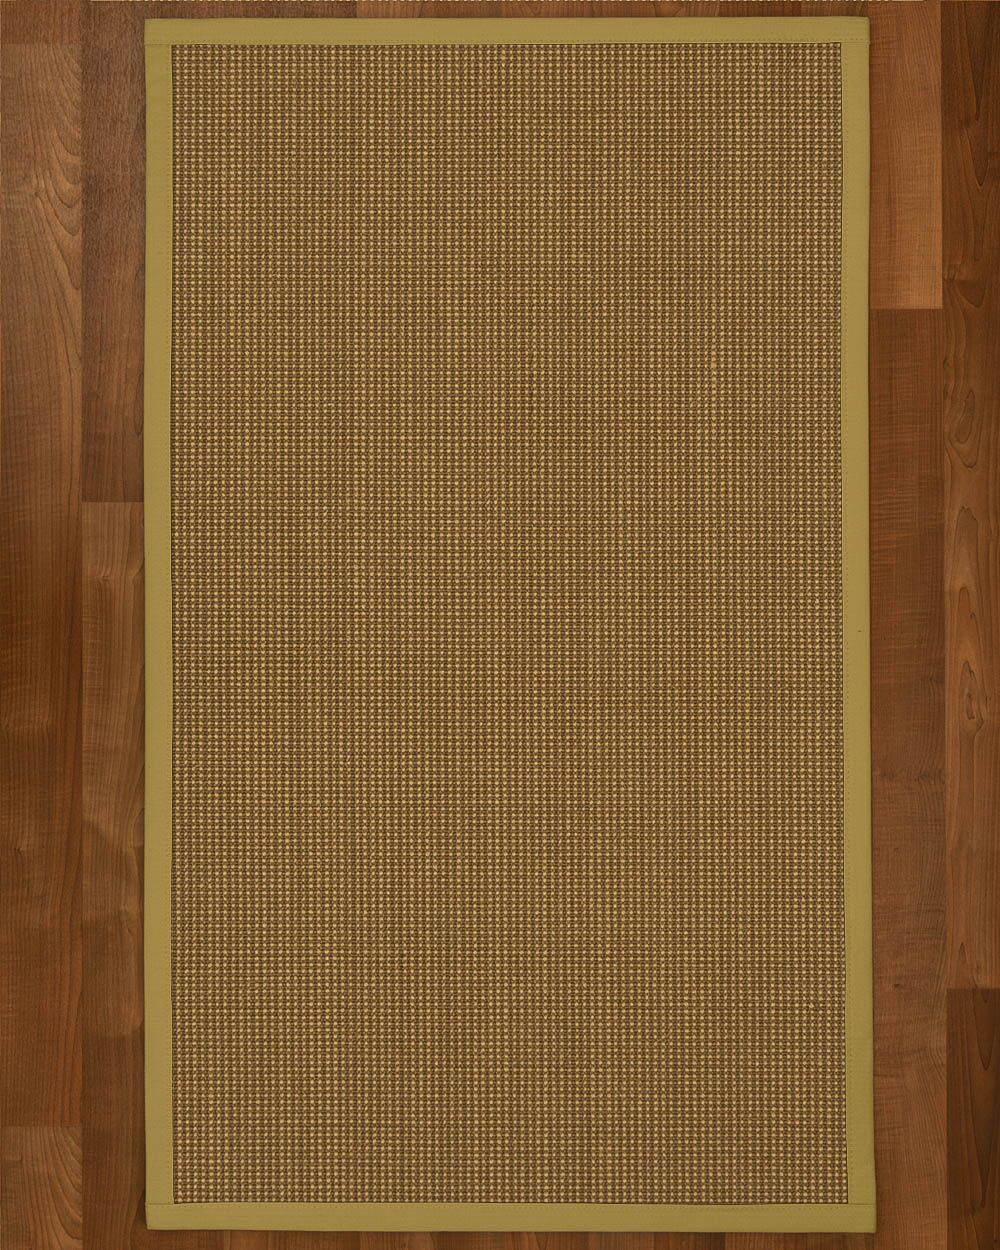 Asther Hand-Woven Brown Area Rug Rug Size: Runner 2'6